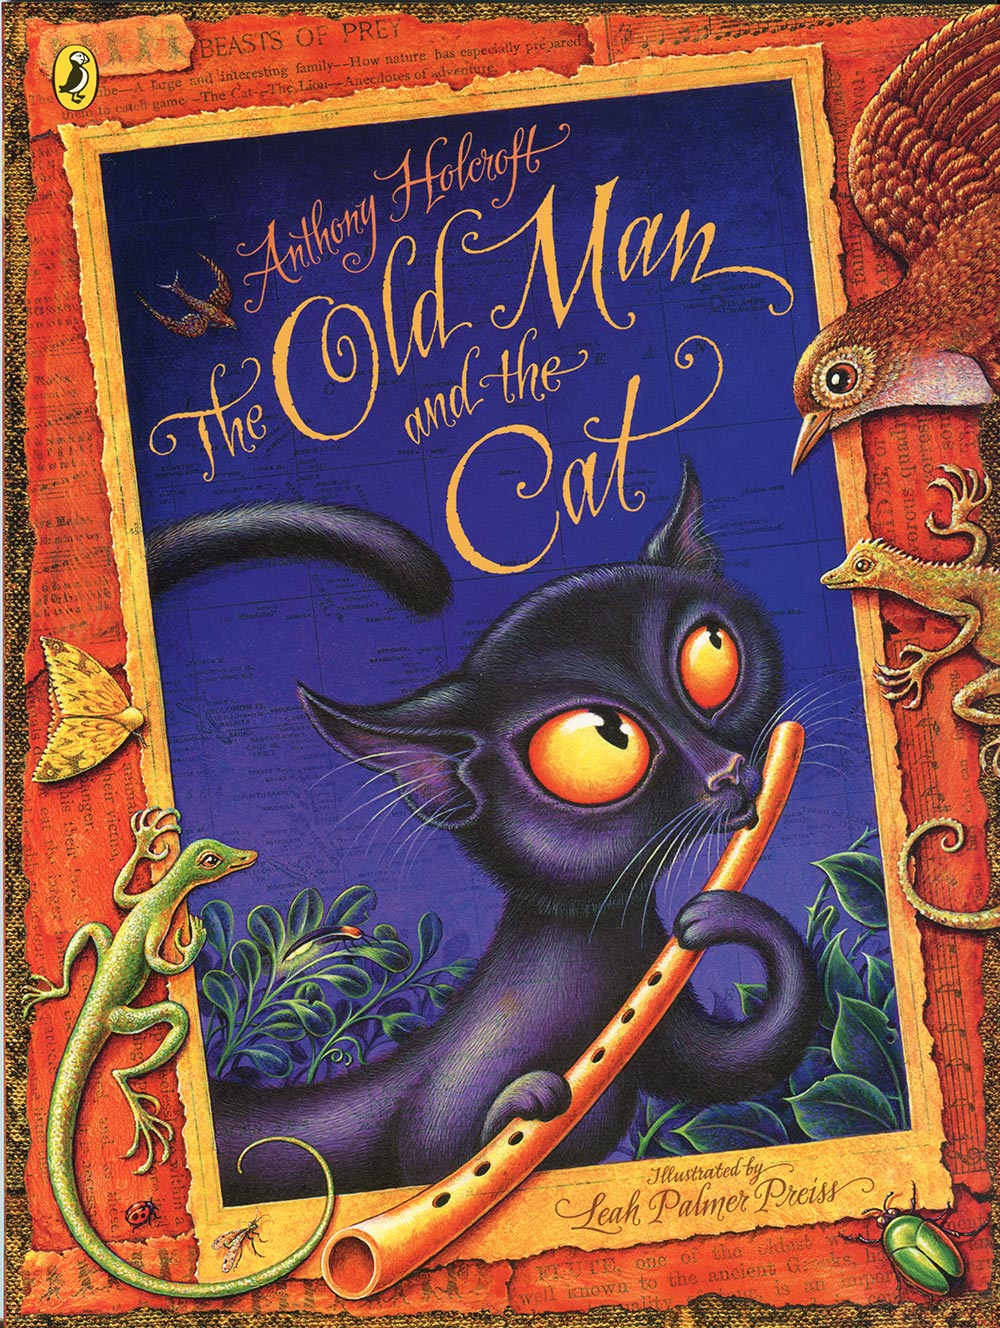 Link to Anthony Holcroft's picture book, The Old Man and the Cat.